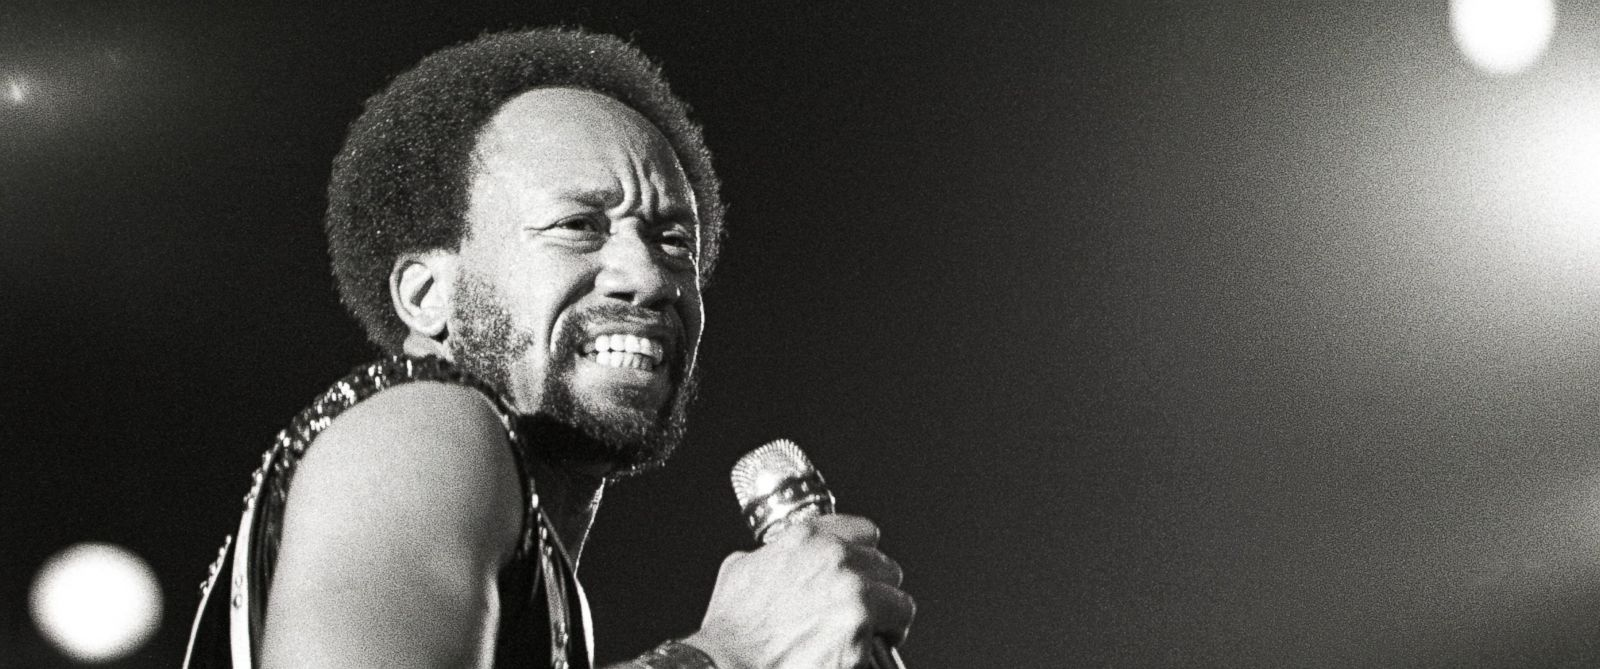 Maurice White performing on stage with Earth, Wind, Fire on March 14, 1979 in the Netherlands.